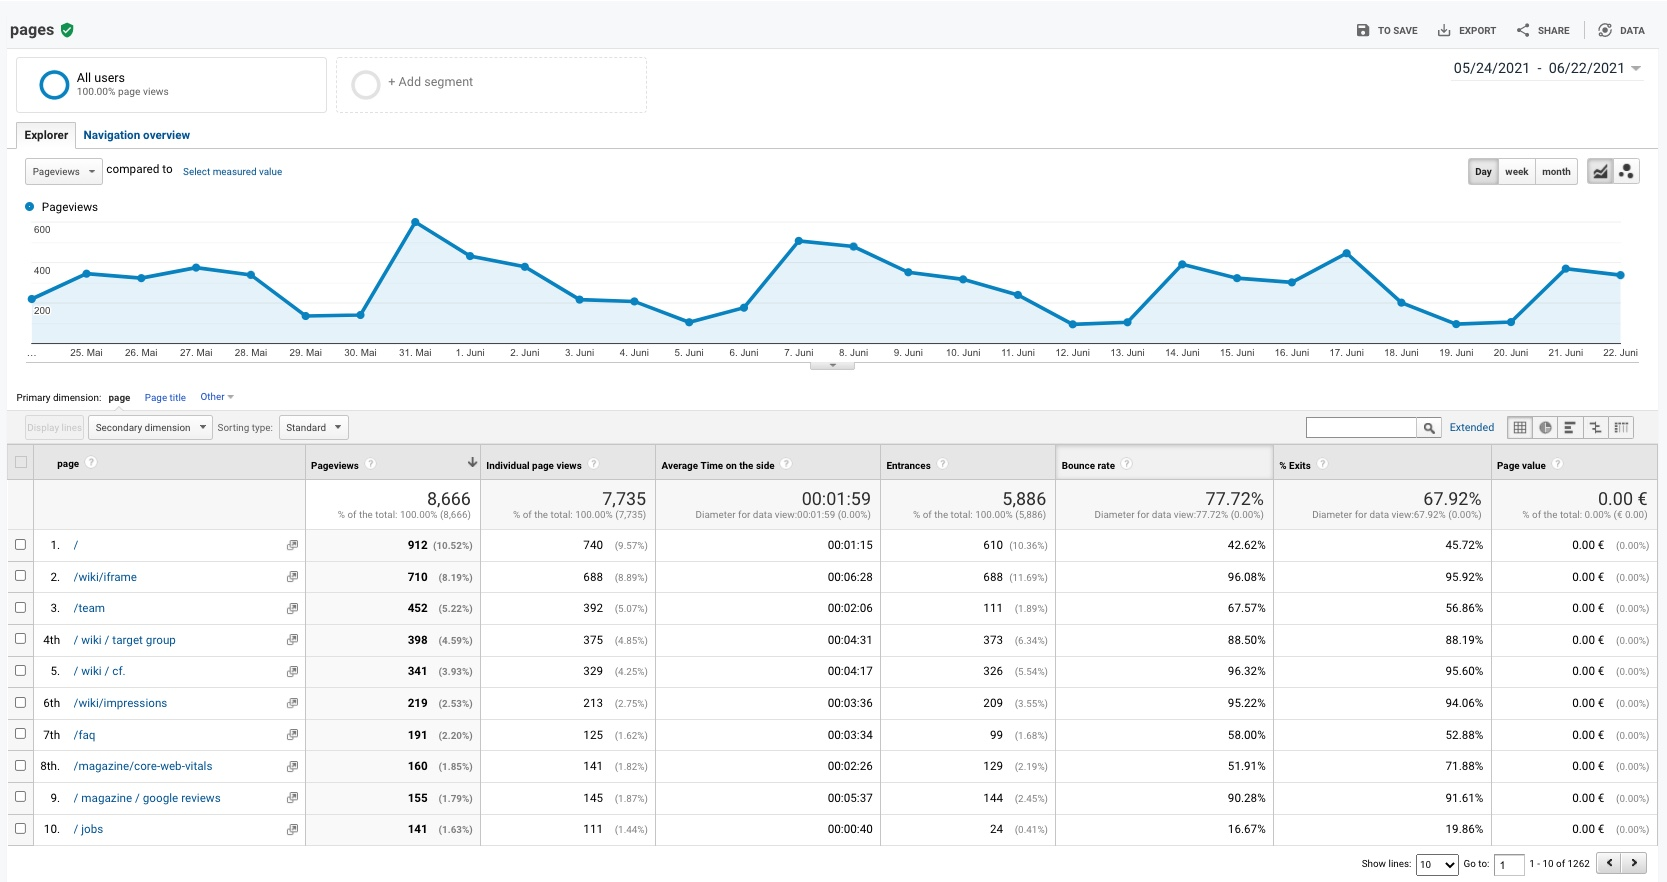 On the picture you can see the page report of Google Analytics. It not only shows you page views over time, but also gives you insights into the top pages of your website.